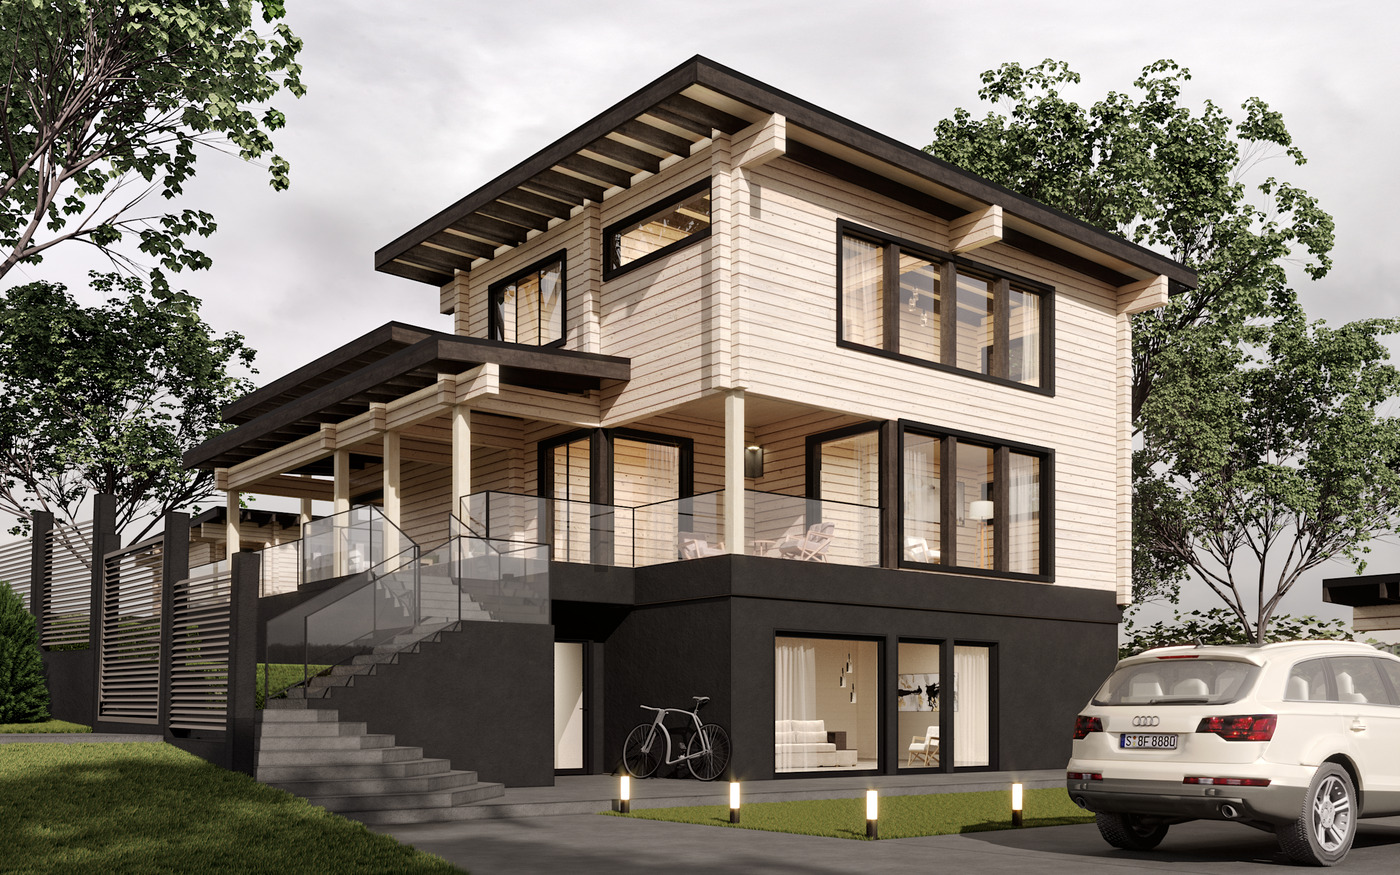 Wooden house with a basement of glued beams with a flat roof, project 268.86 m²